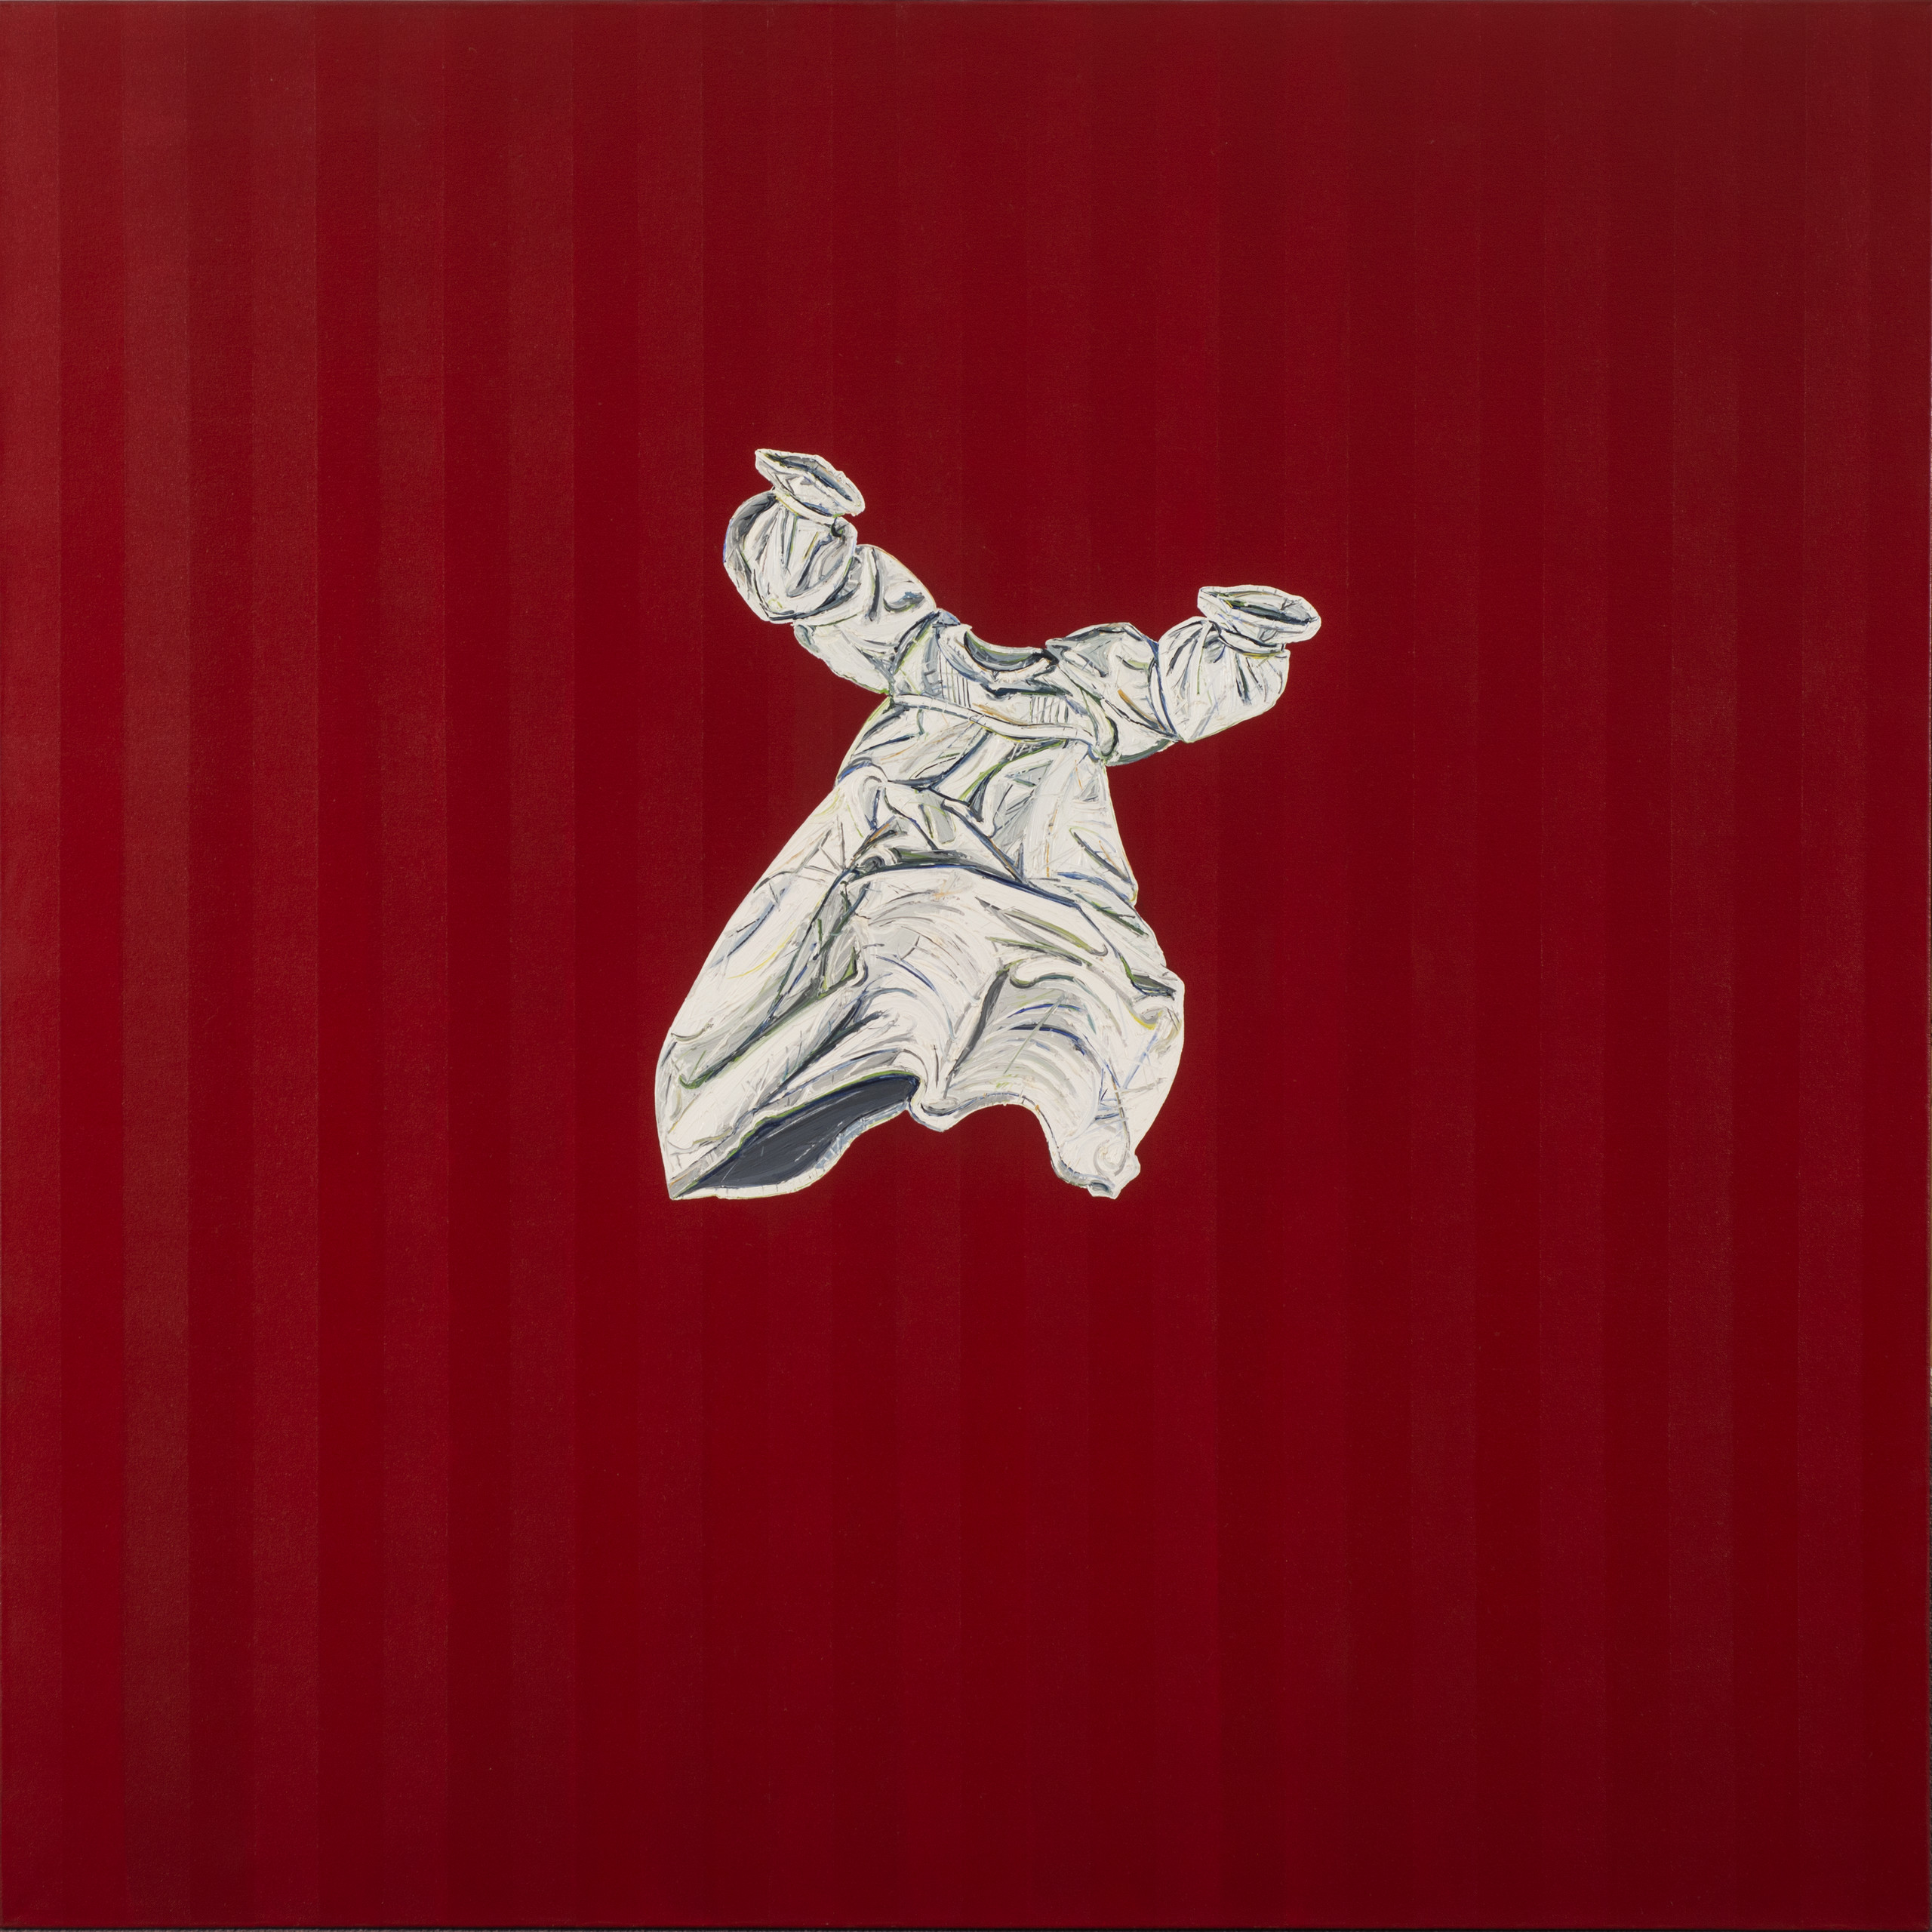 A floating nightgown on a background of subtle vertical red stripes alludes to the shape and movement of a body. The white nightgown is dwarfed by the red that surrounds it, and floats with its arms raised and hem disturbed.